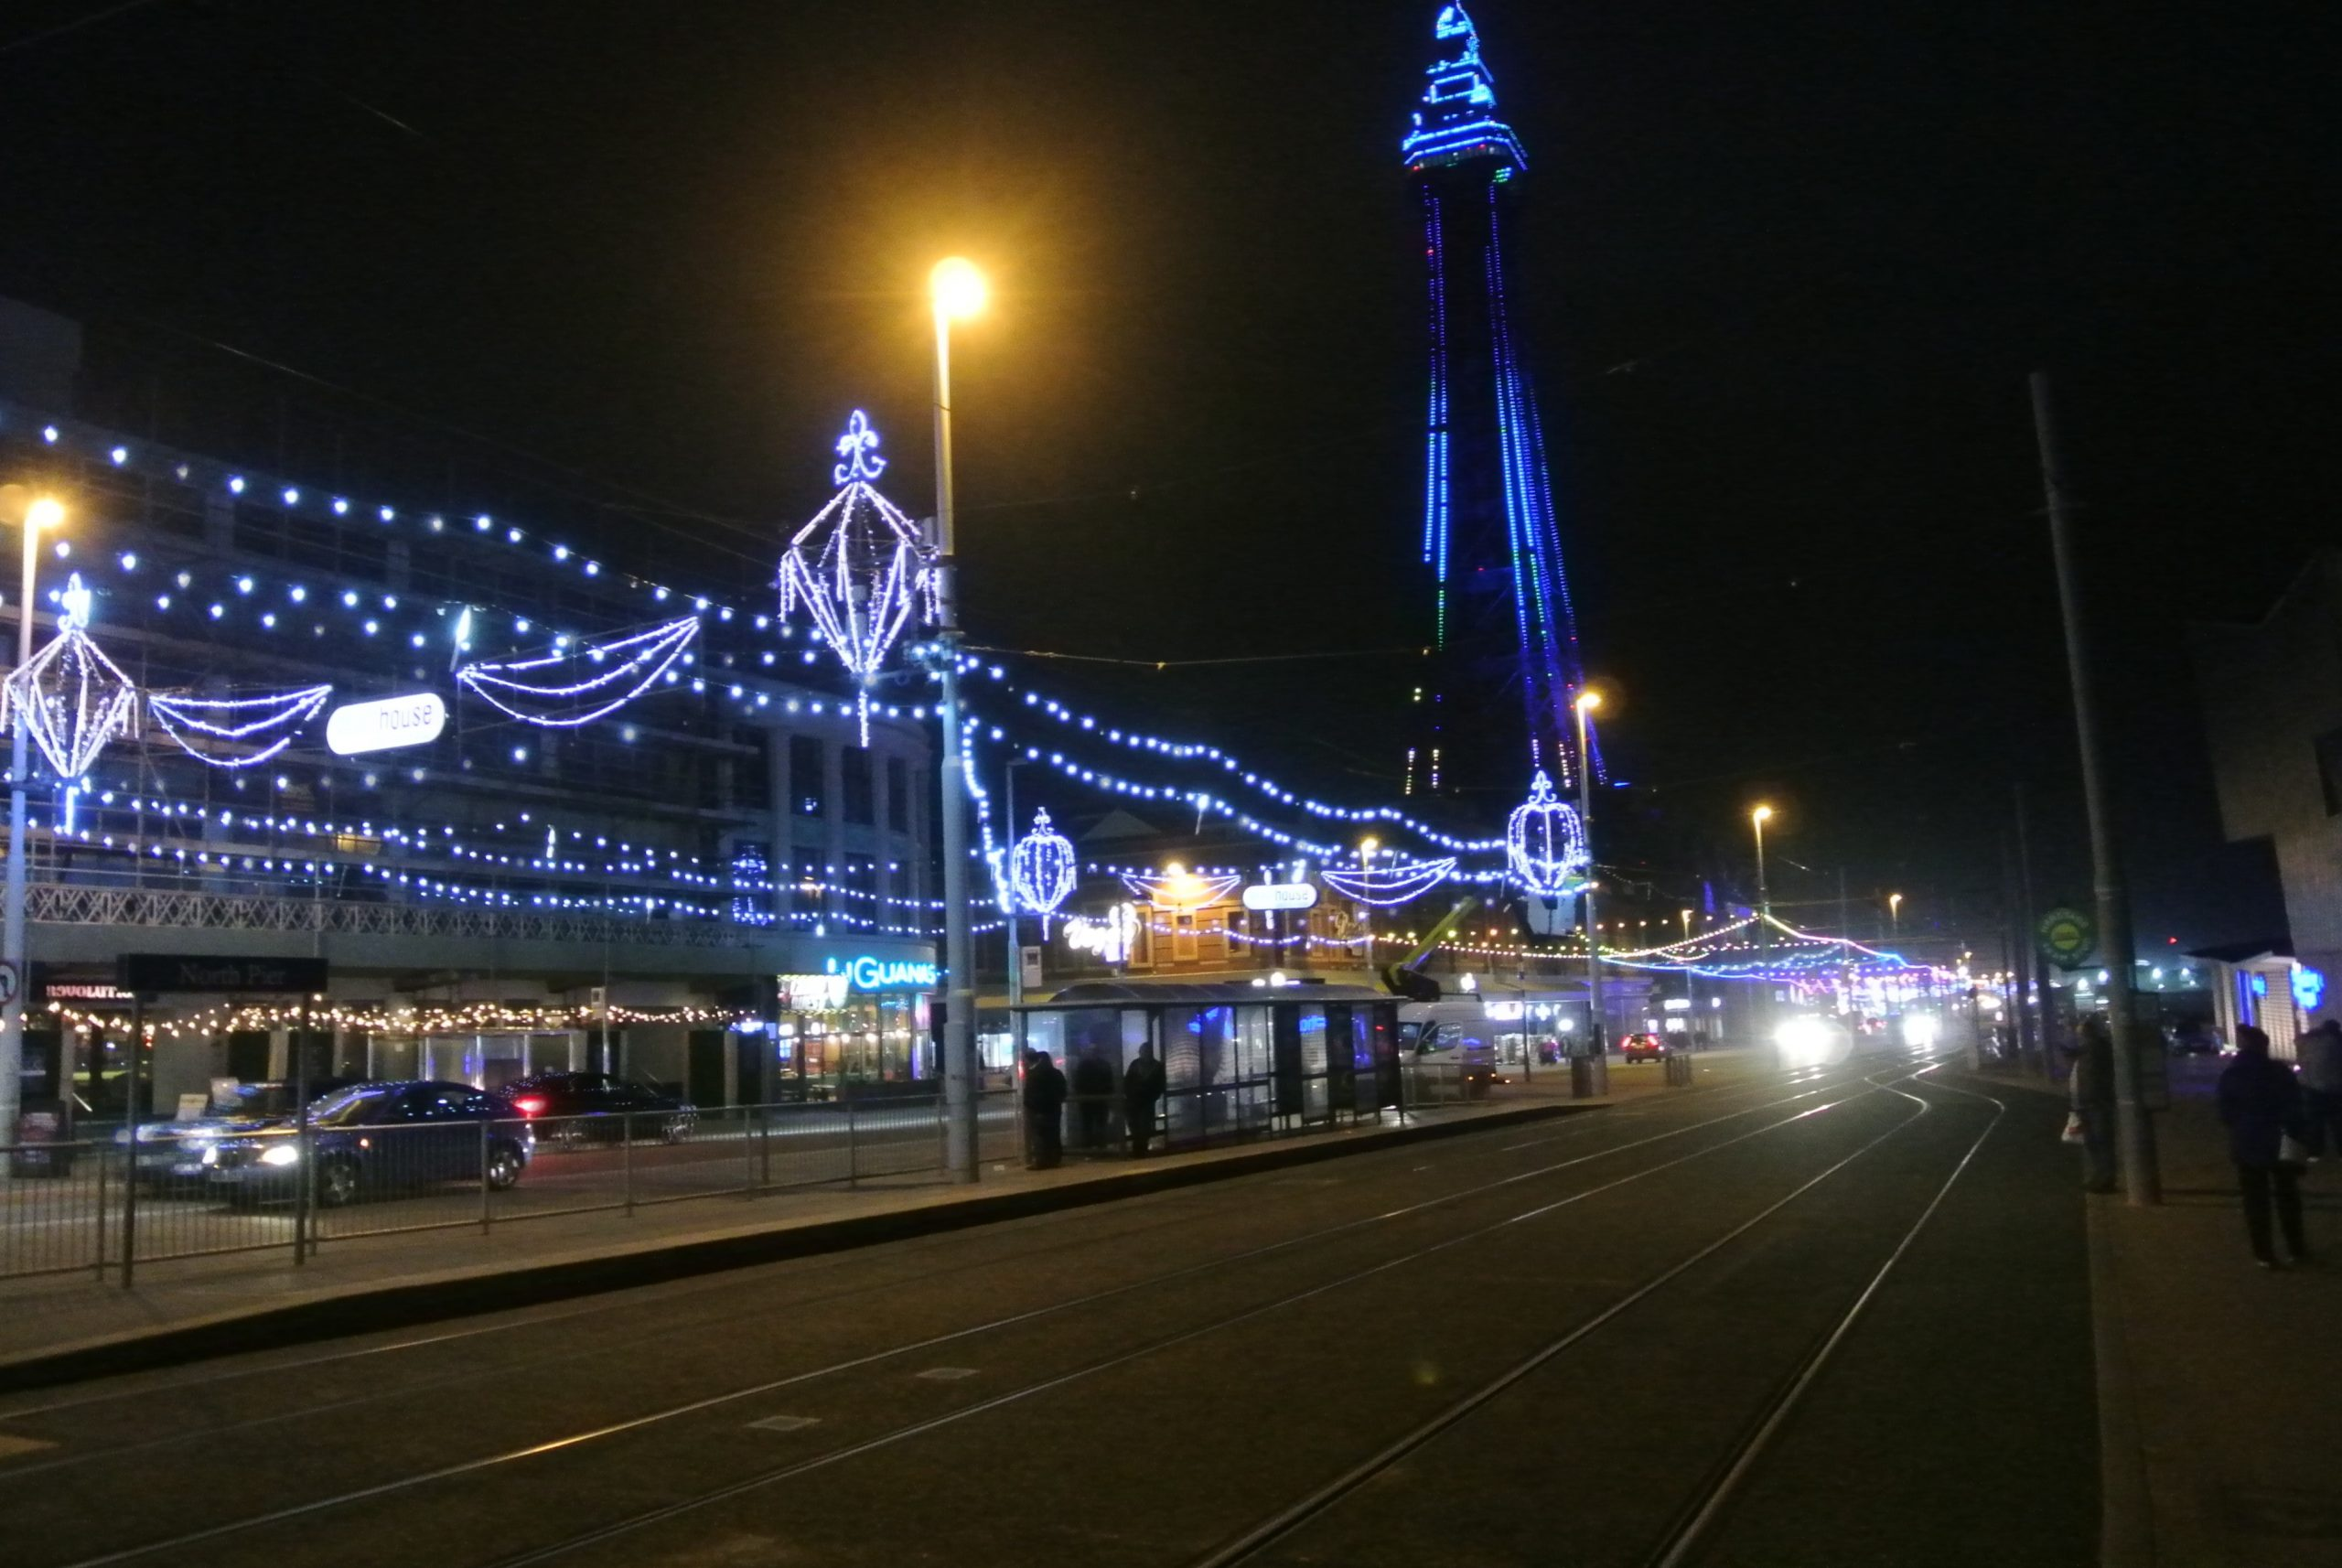 Blackpool and the Tower - photo by Juliamaud